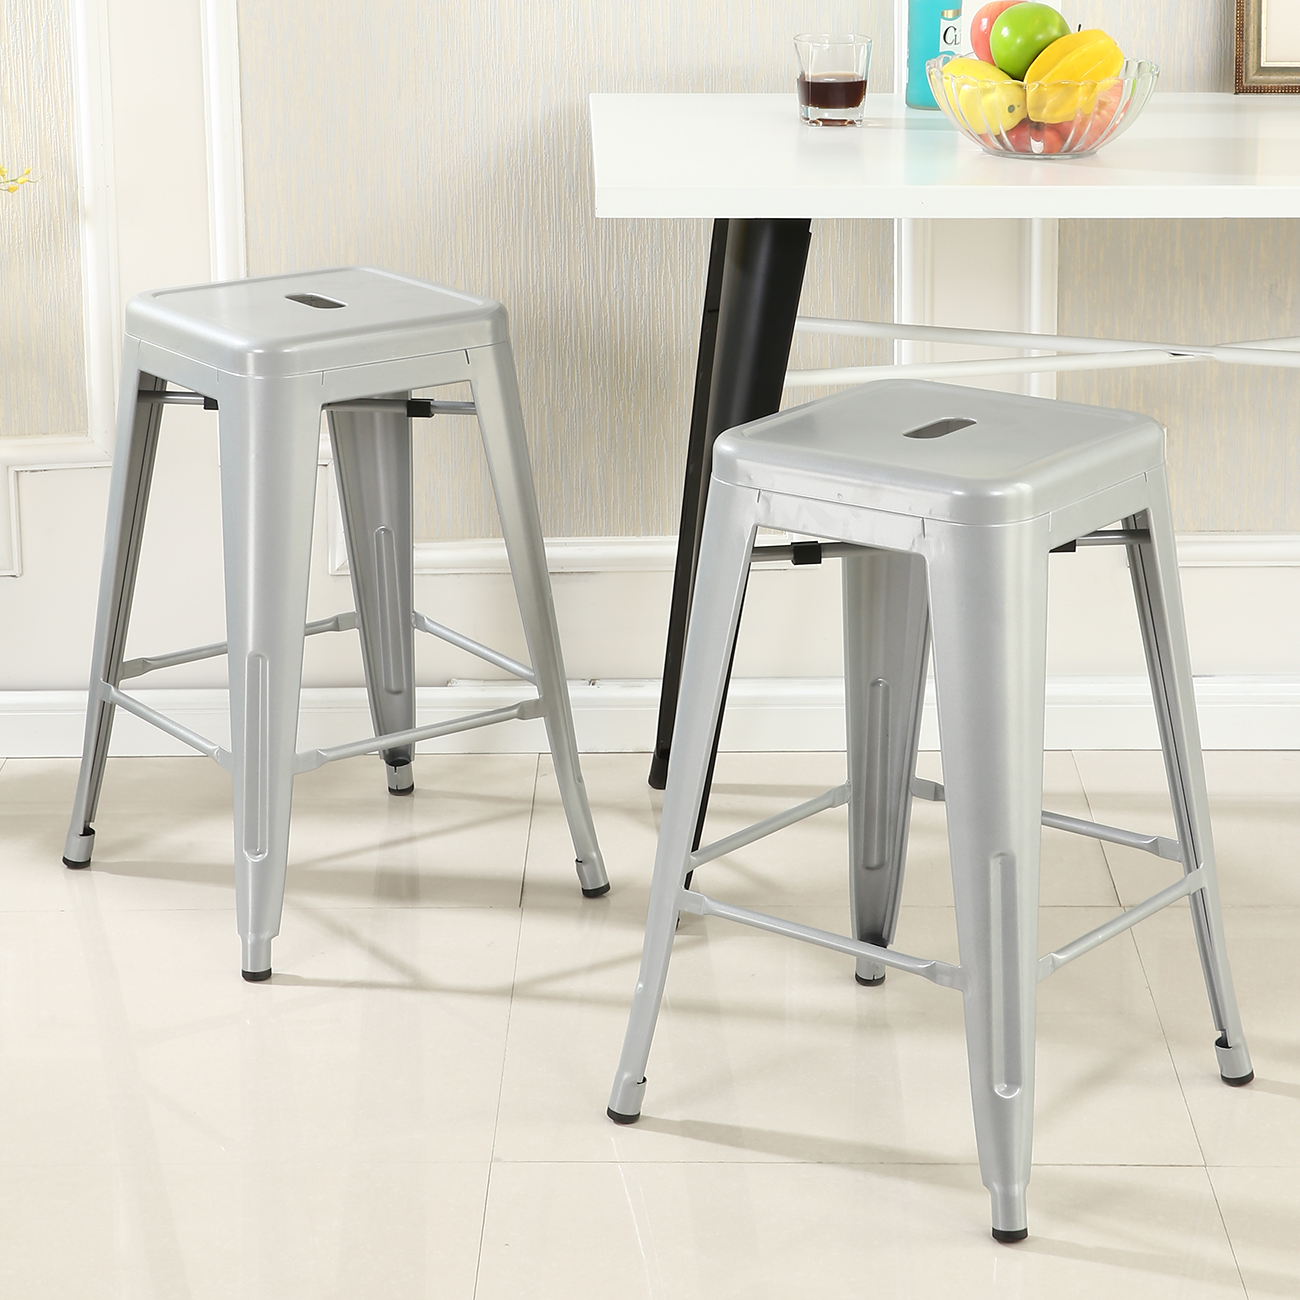 26 inch counter height stools